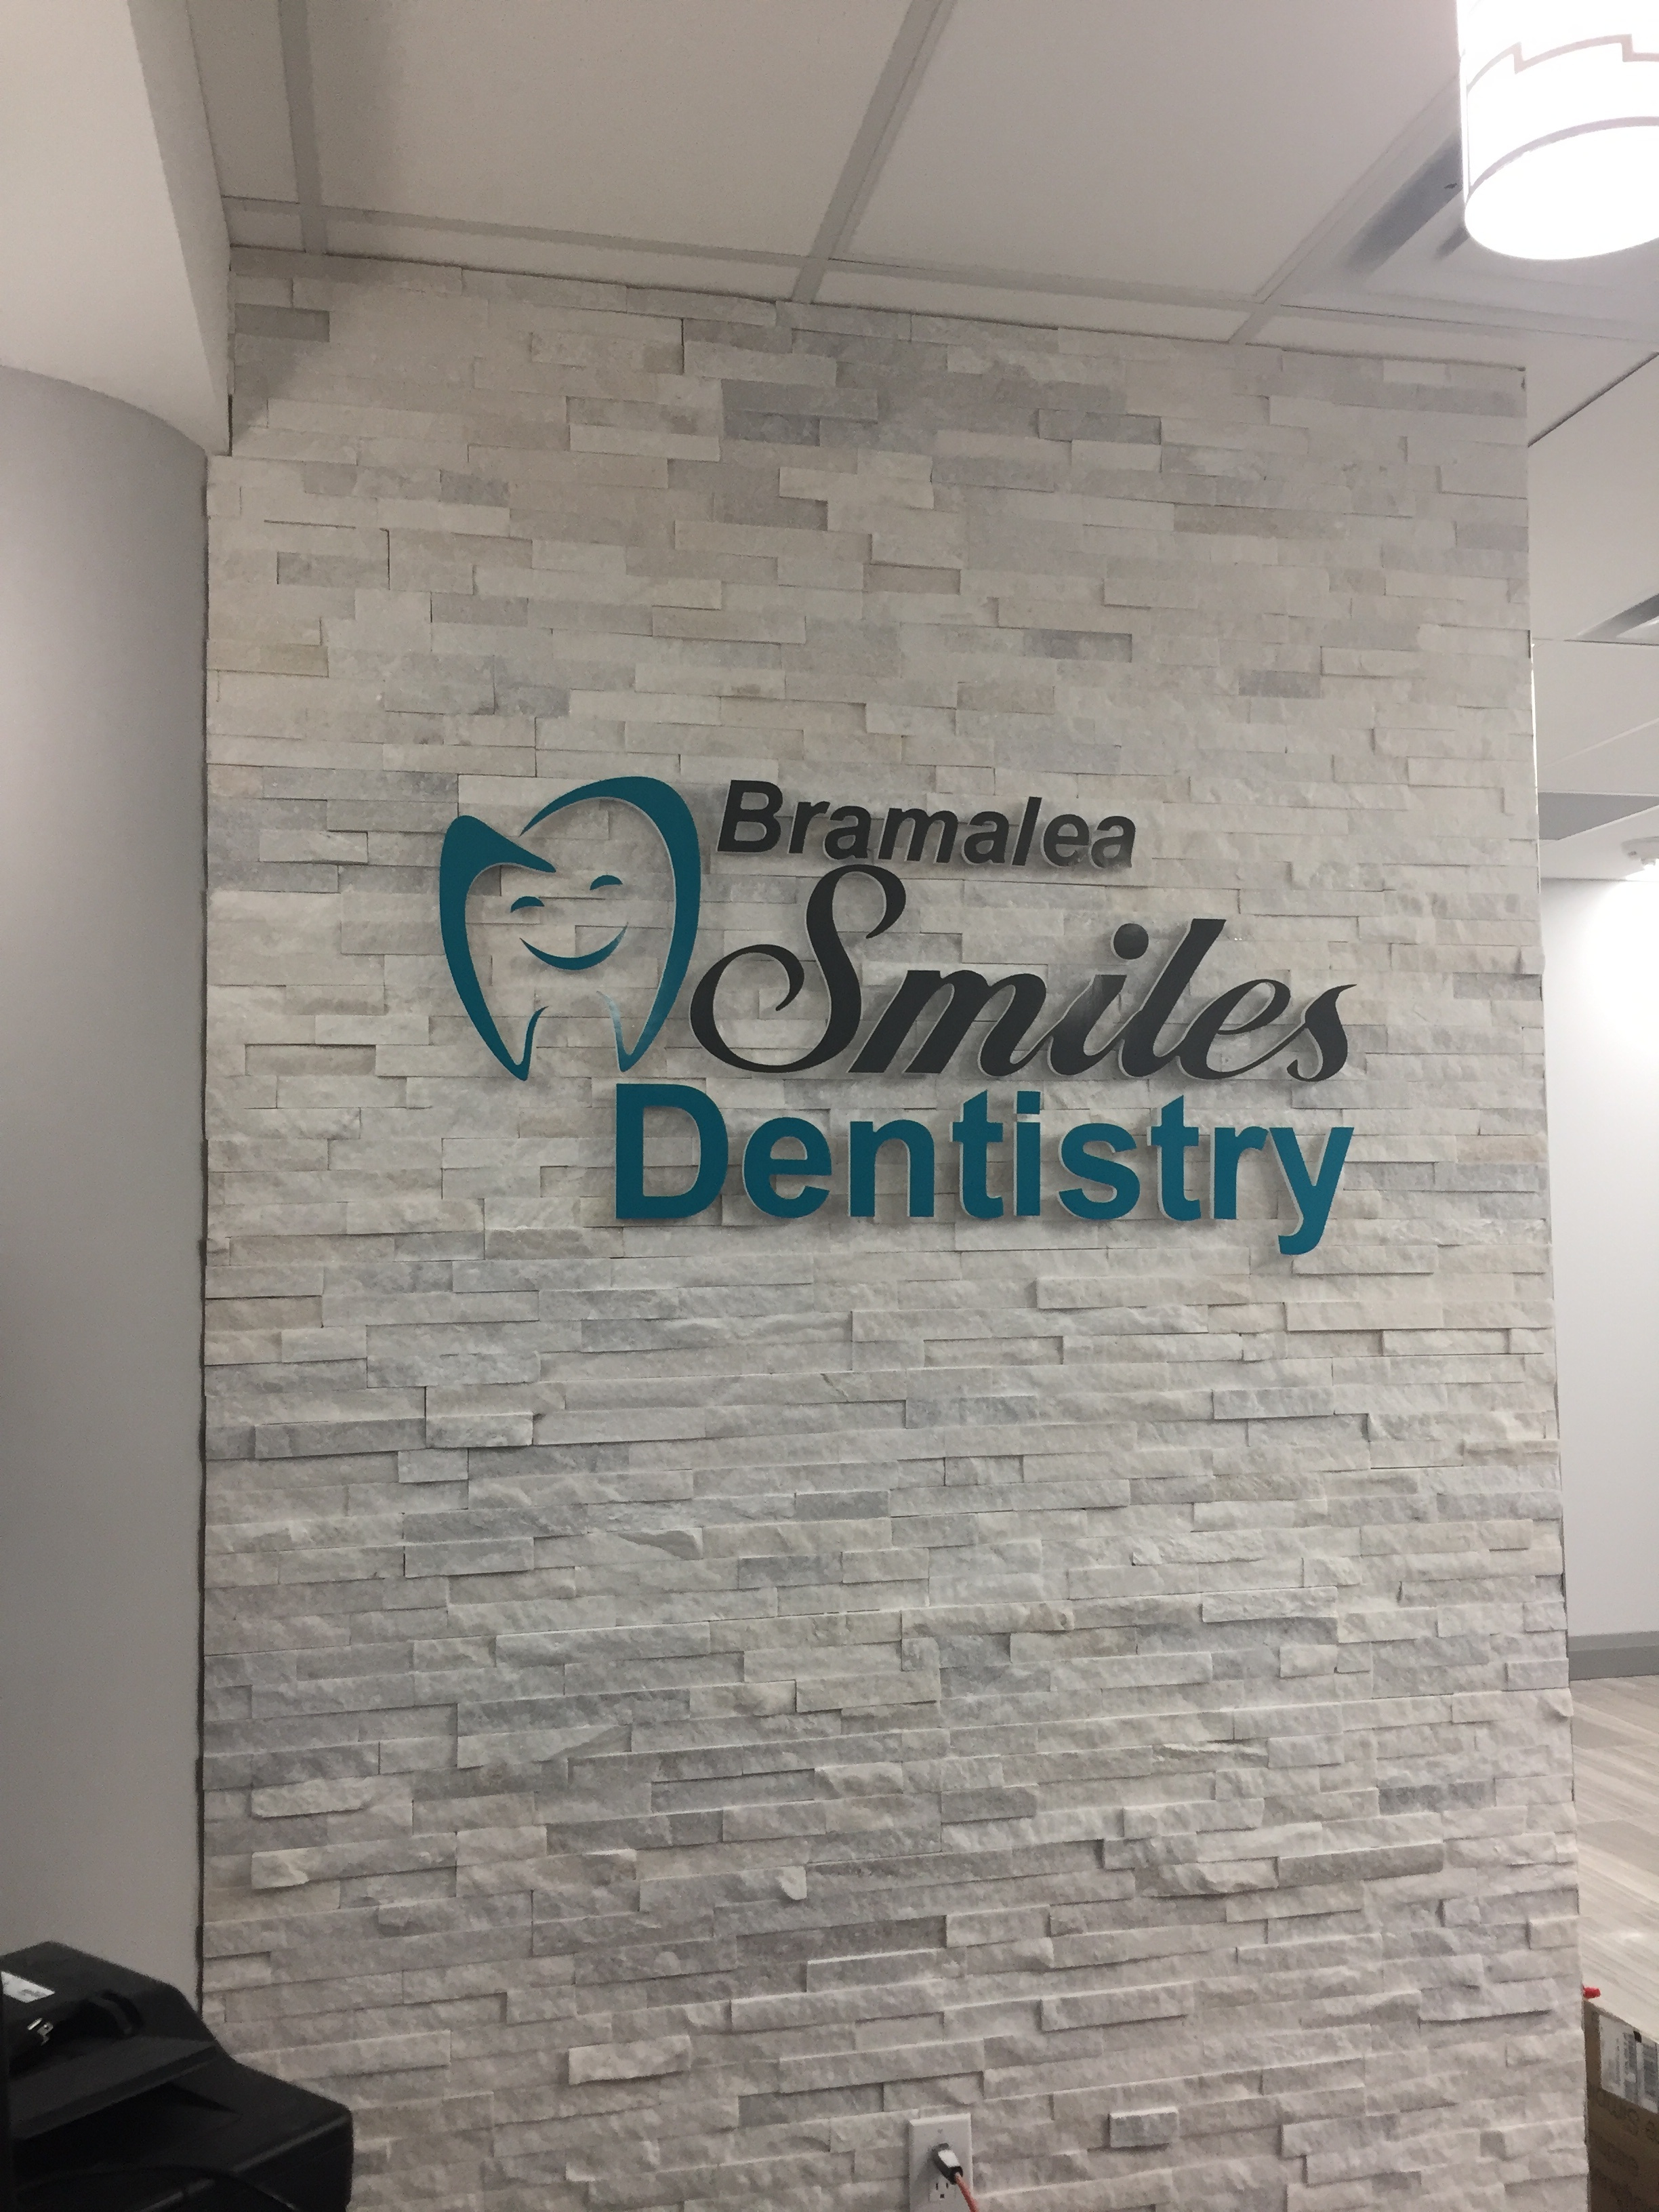 https://0901.nccdn.net/4_2/000/000/071/260/bram-smiles-dentistry-2448x3264.jpg